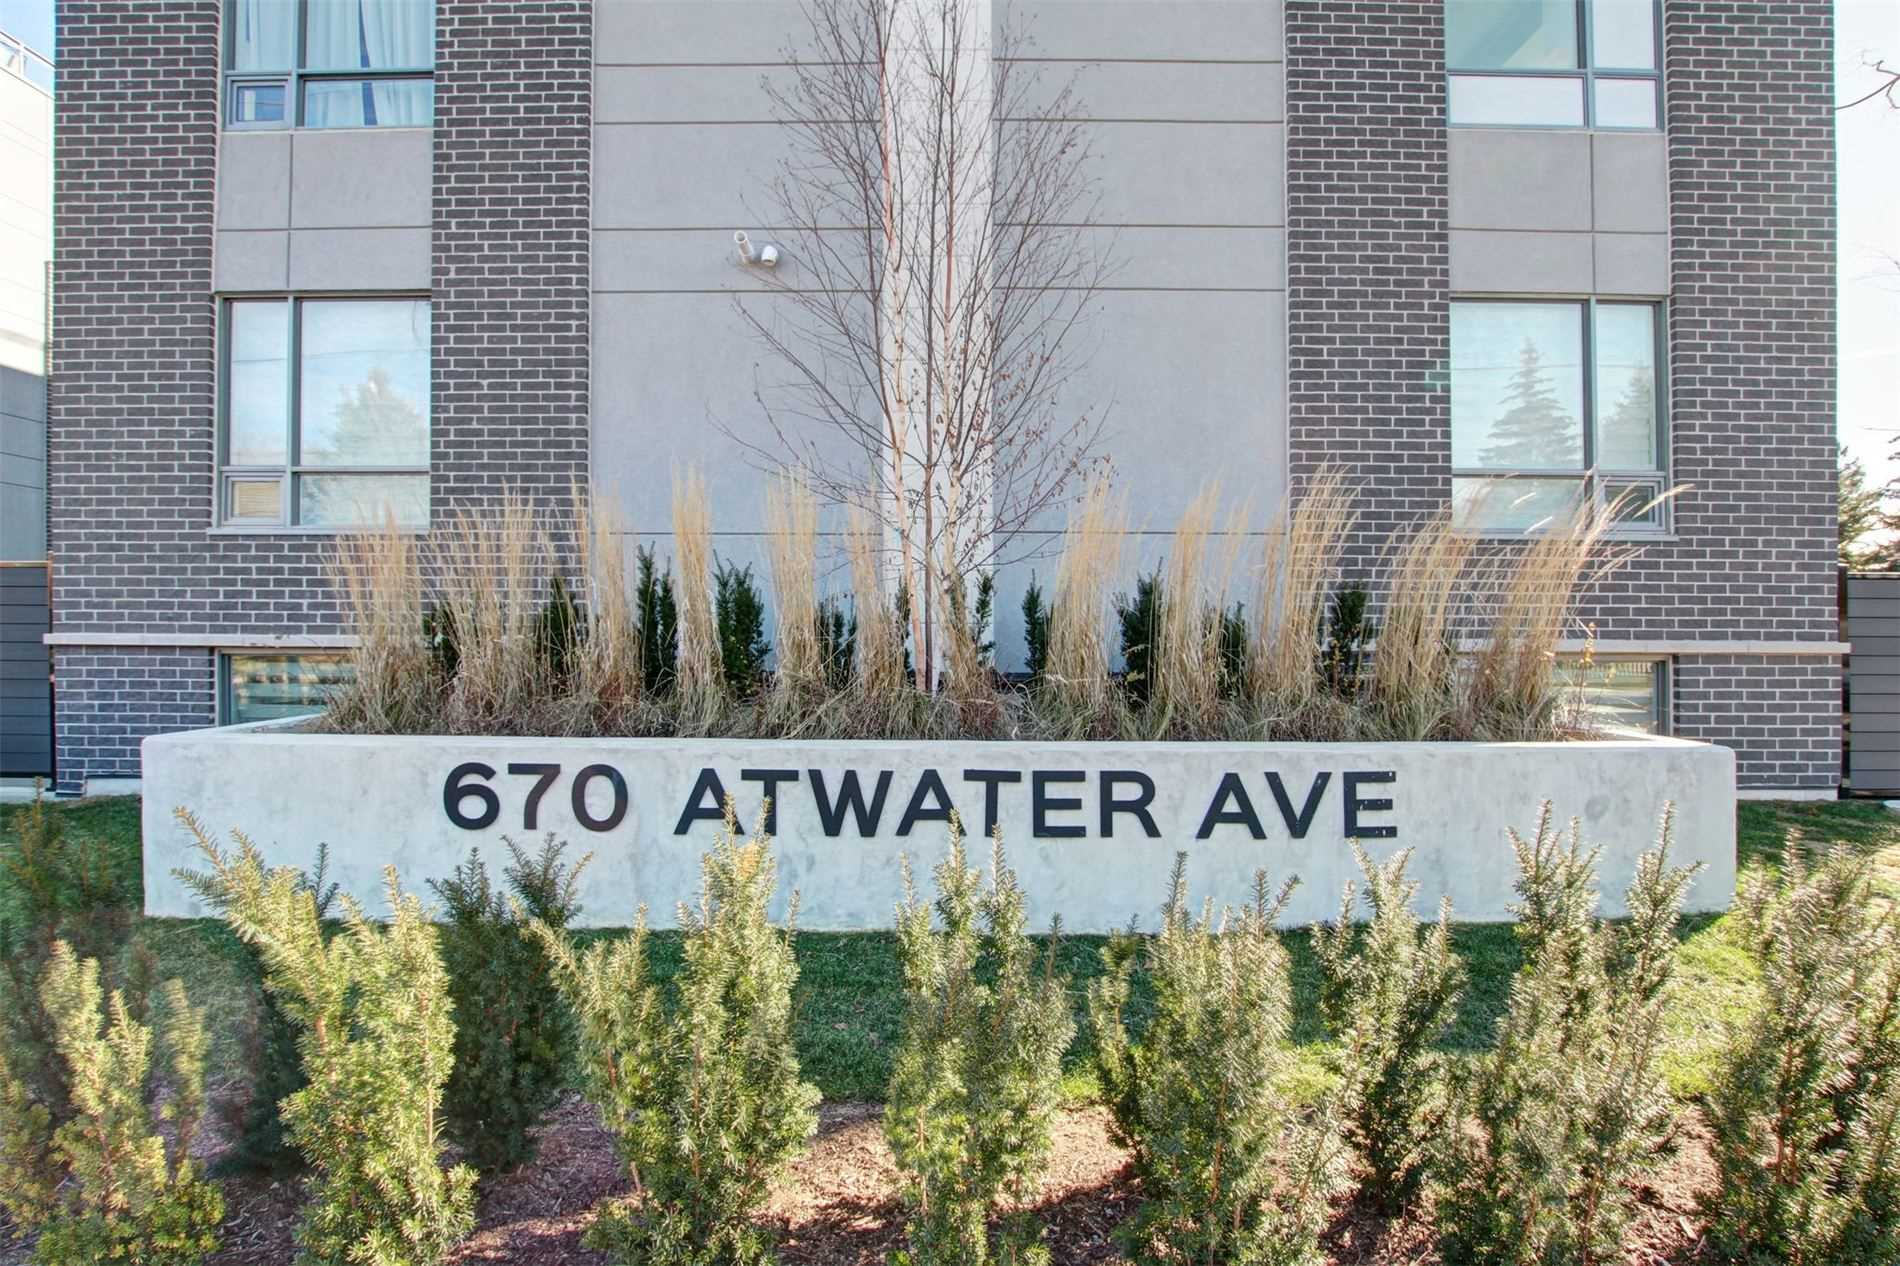 18-670-atwater-ave